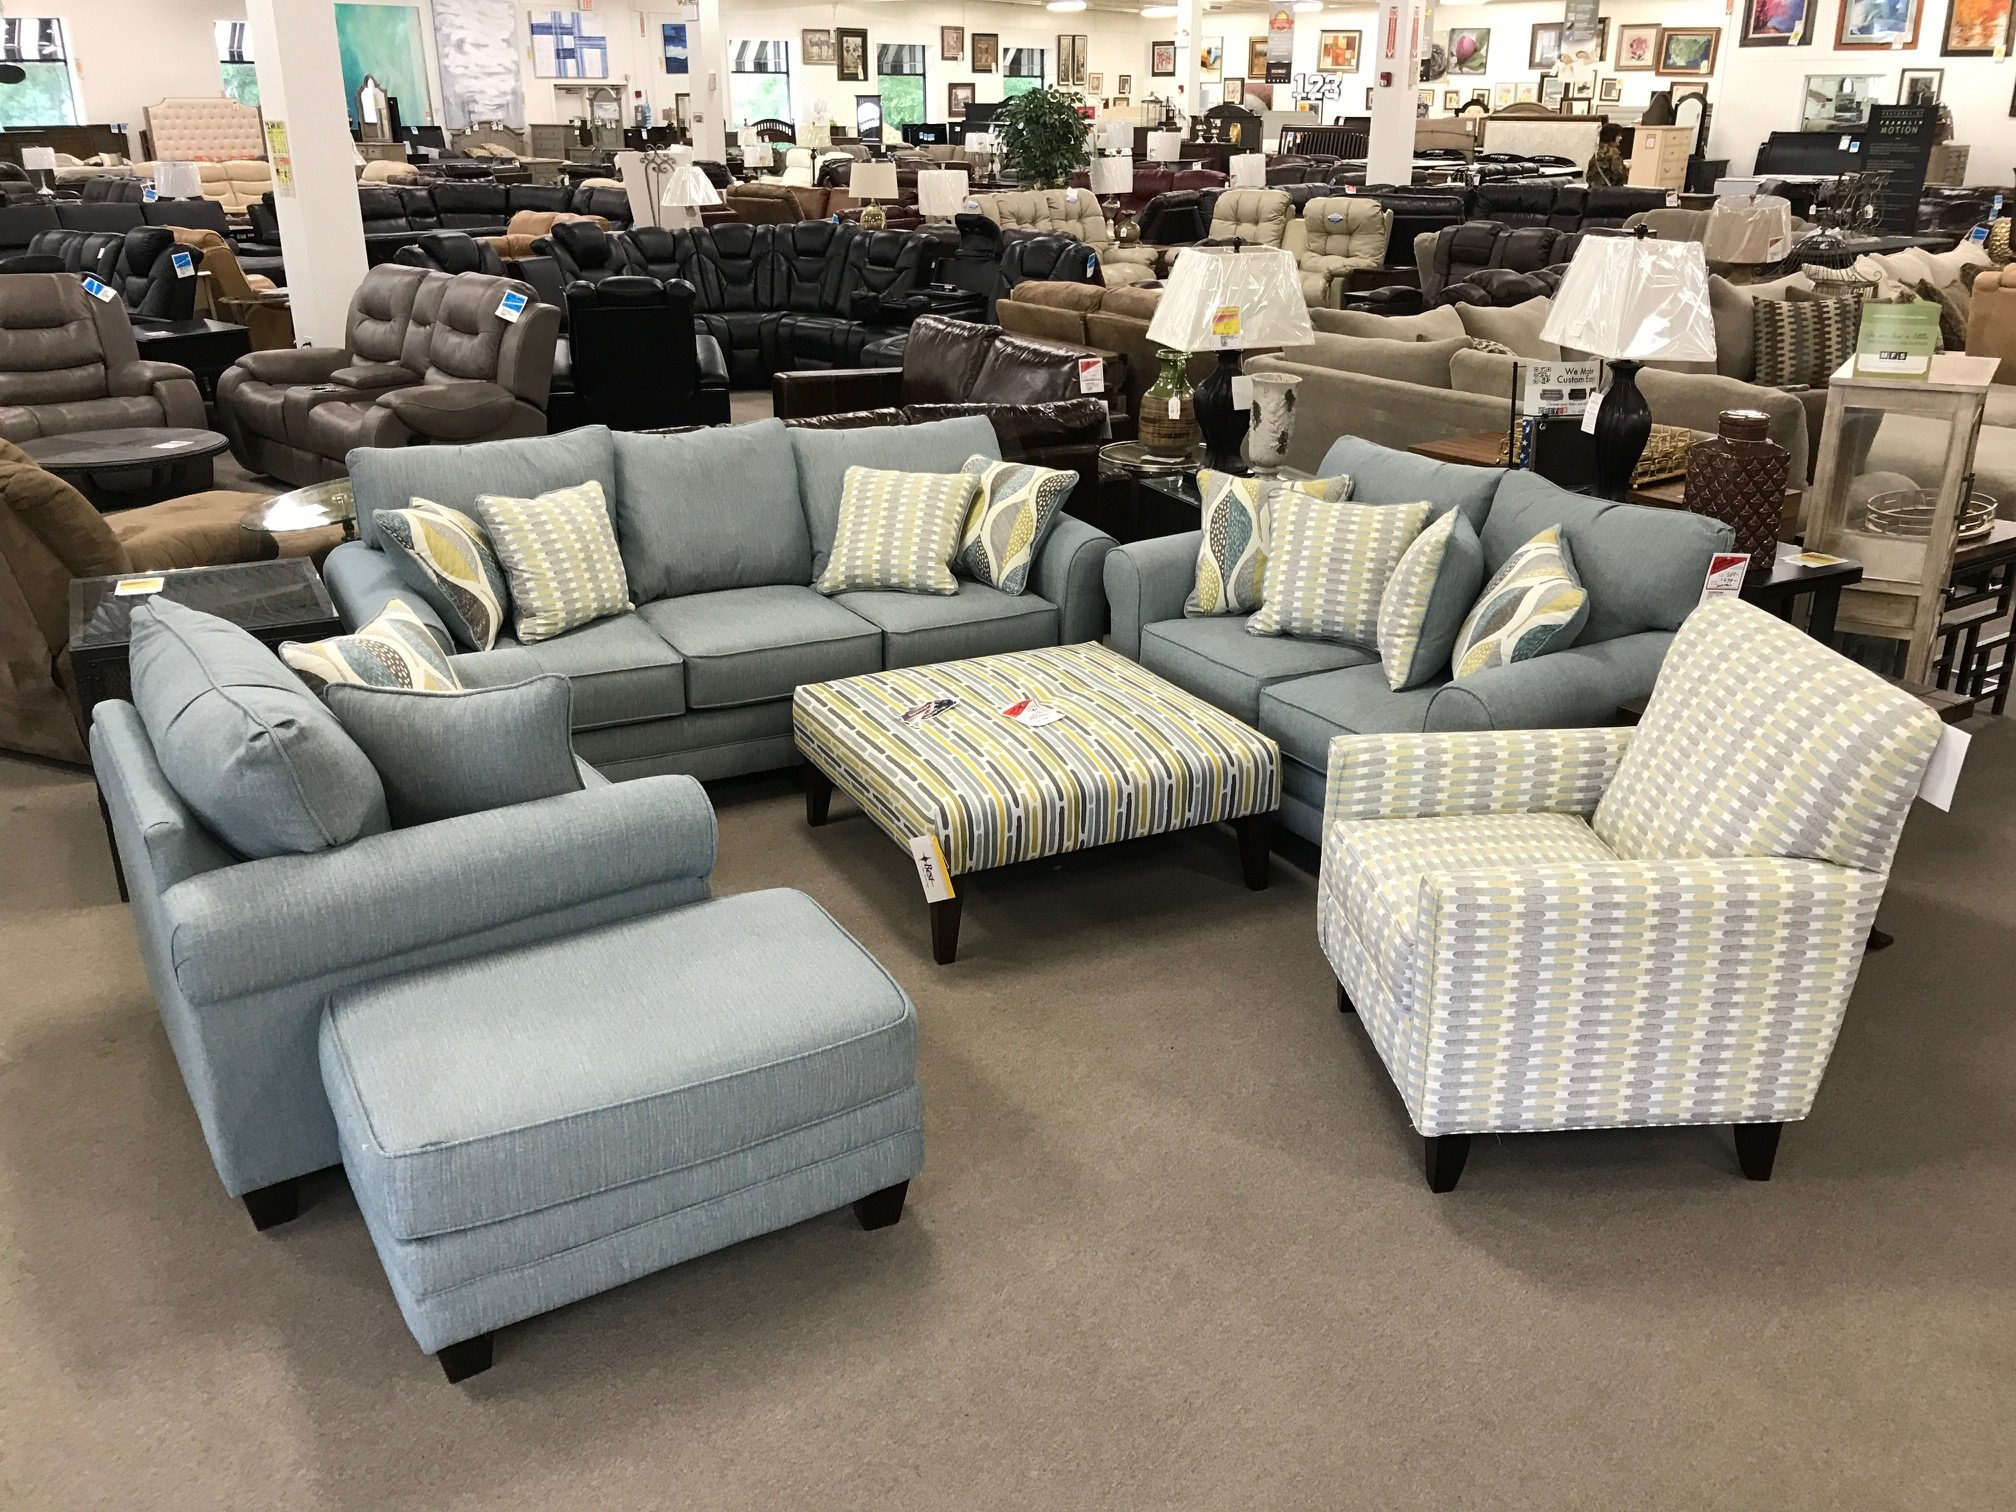 best sellers heavner furniture market img ave six piece fabric chair and accent table set aqua patterned living room vintage swedish modern armchair wide mirror outdoor occasional